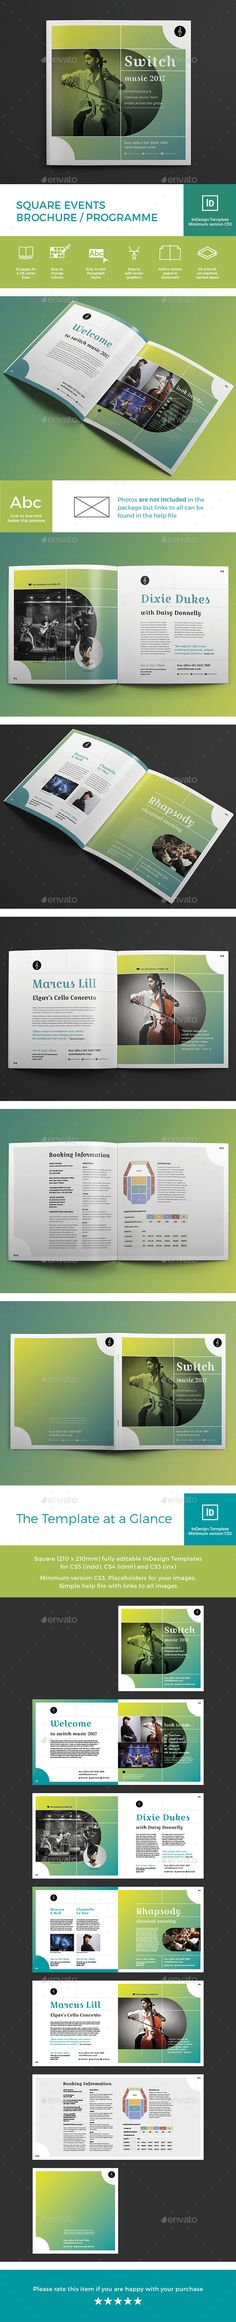 Square Events Brochure / Programme - #Brochures Print #Templates Download here:  https://graphicriver.net/item/square-events-brochure-programme/19537184?ref=alena994